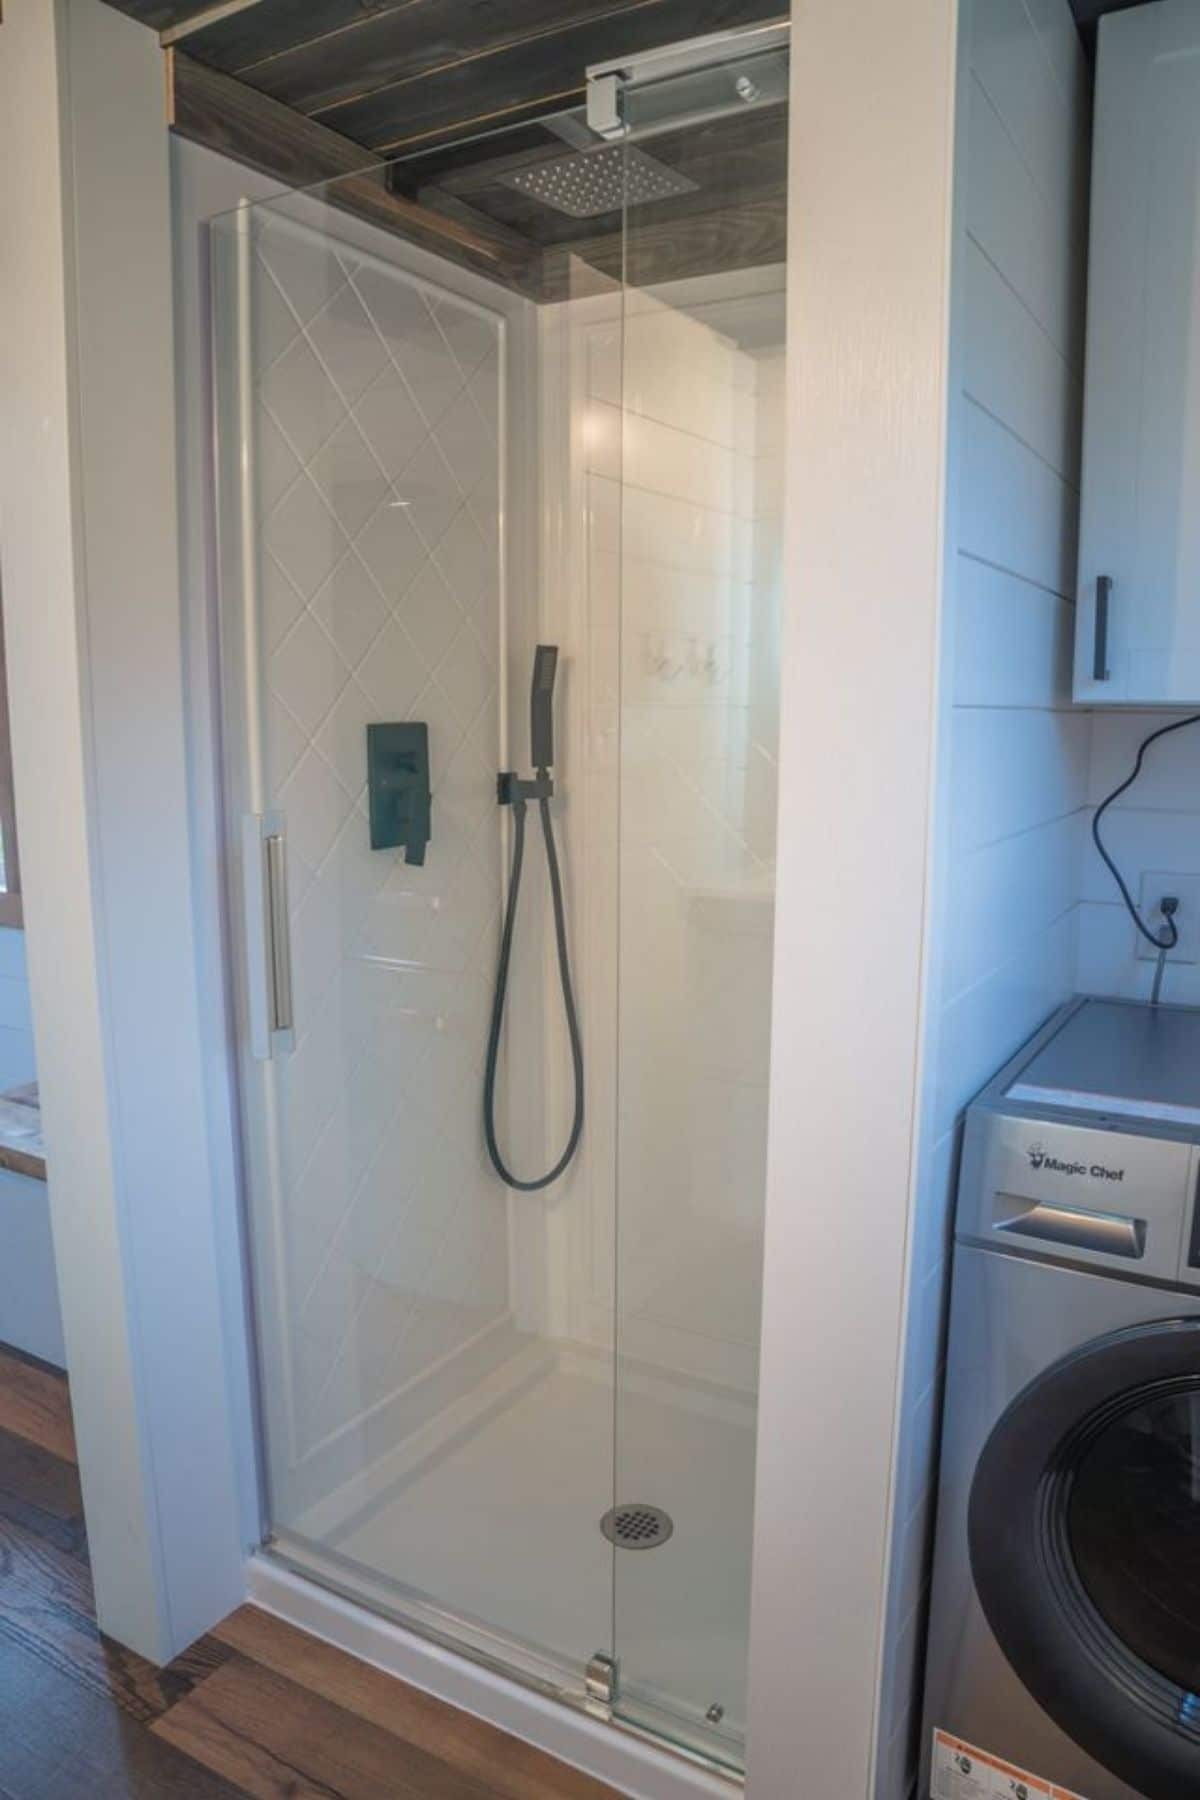 Tall white shower stall in corner with glass door